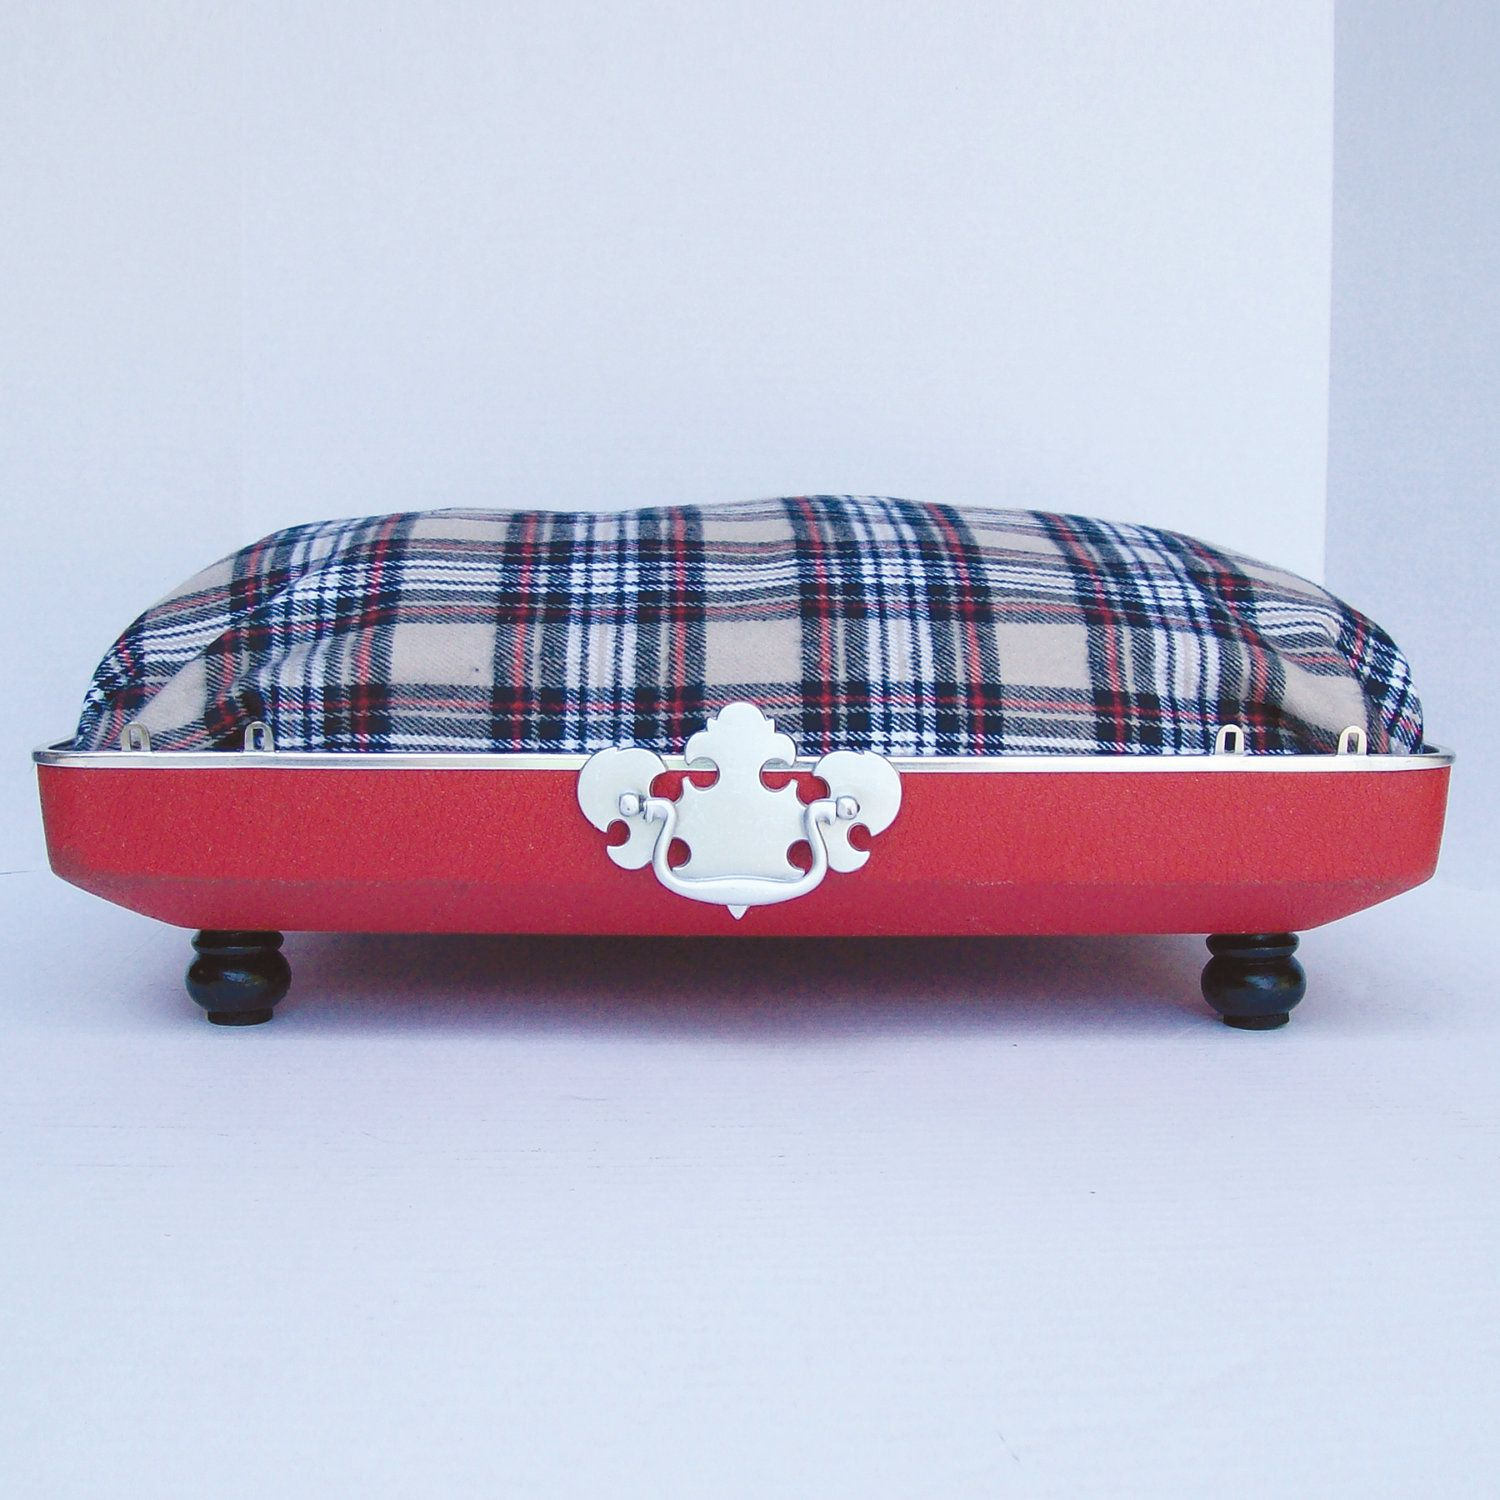 Red flannel fabric  Pet Bed from Vintage s Suitcase  Red with Tan Red and Black